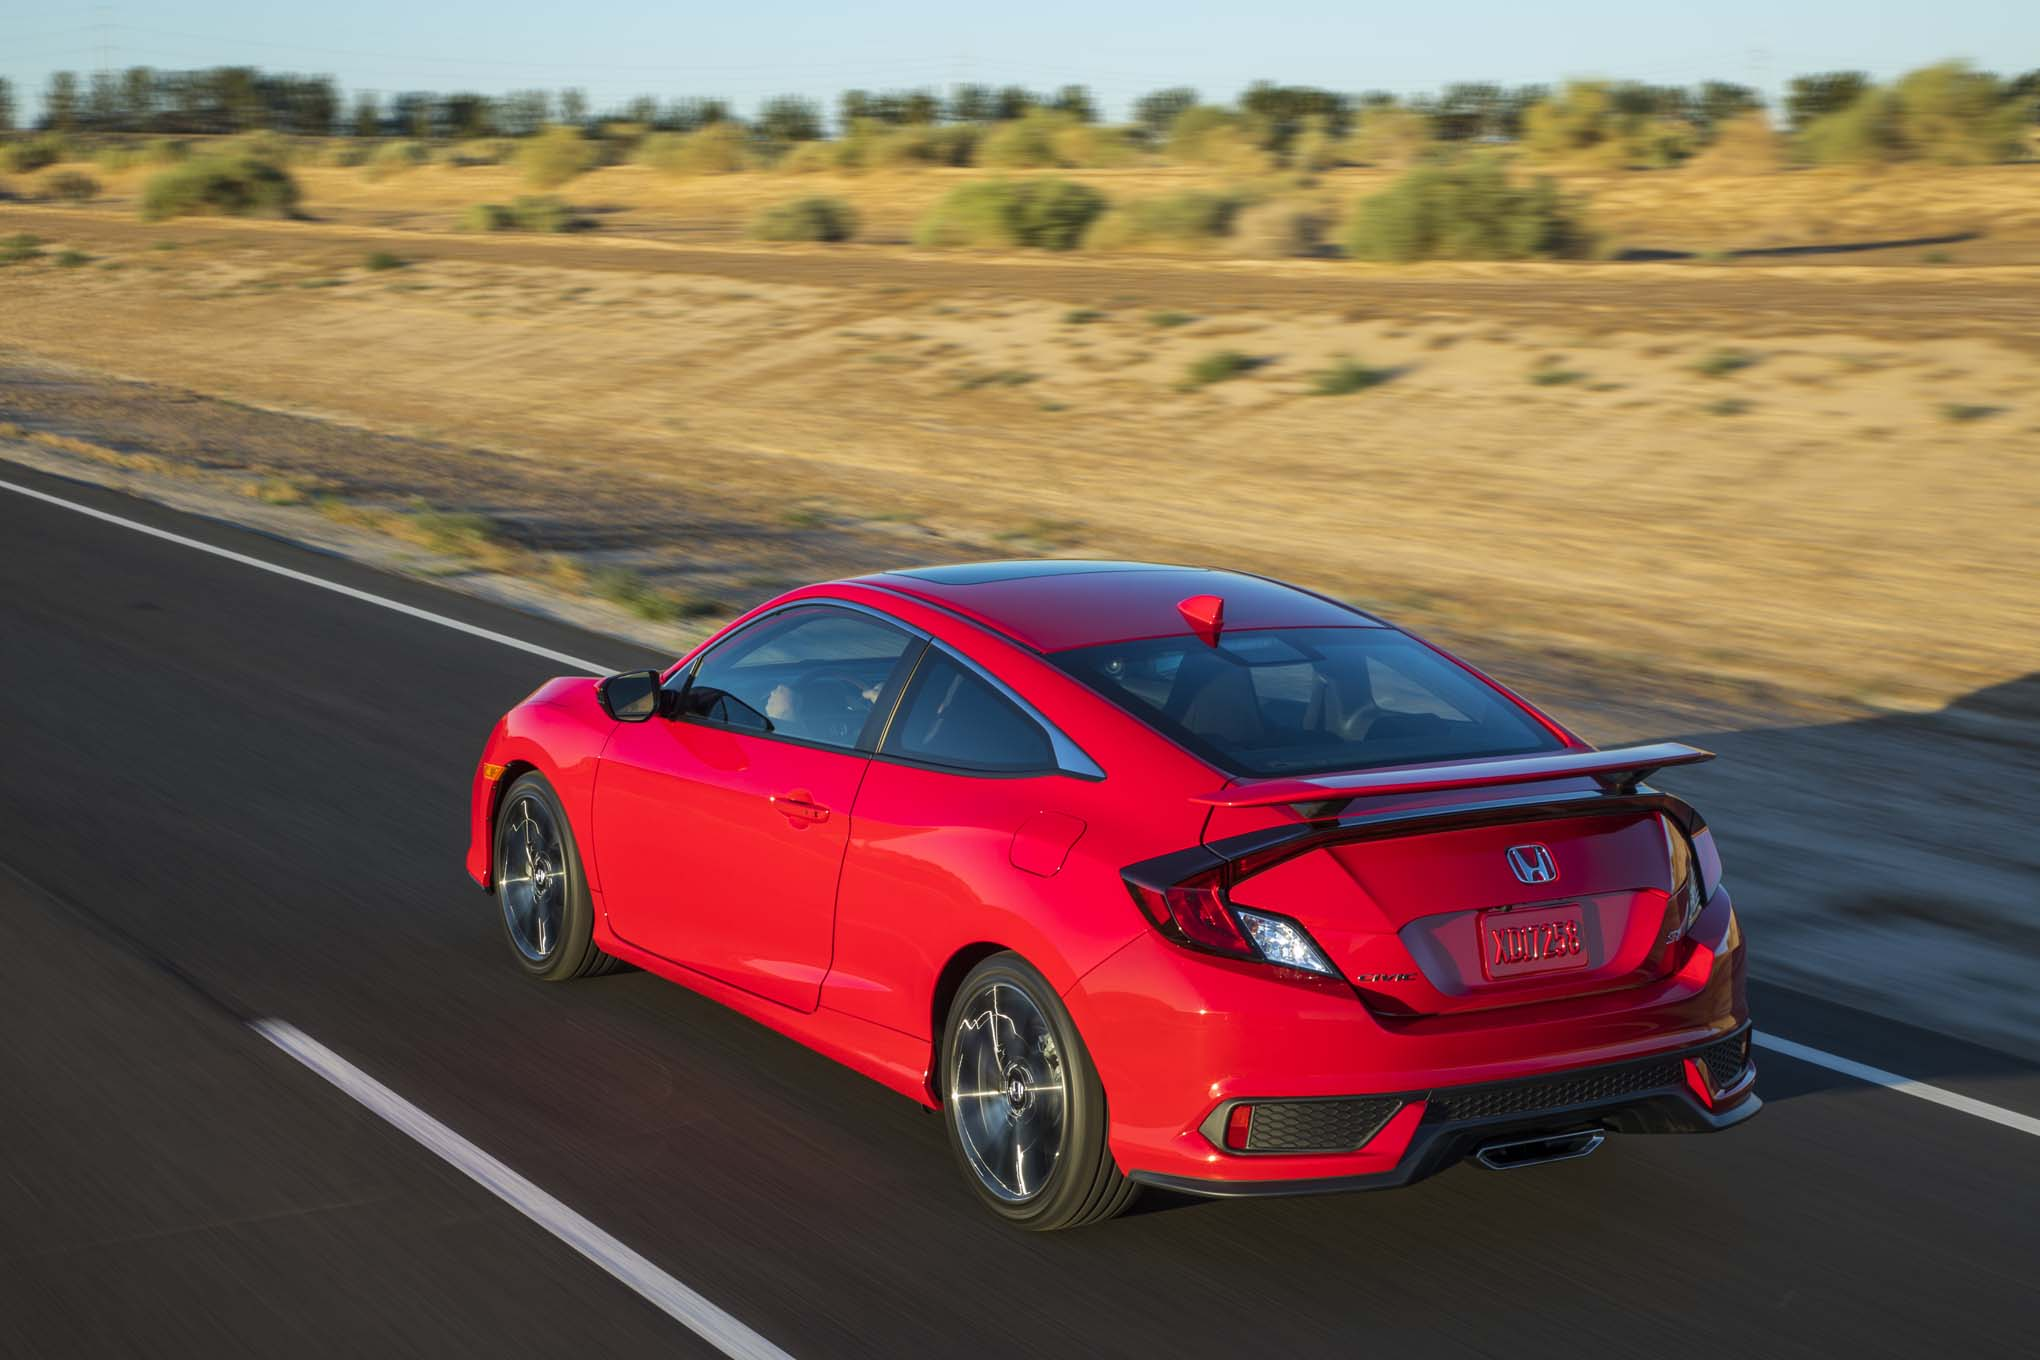 Honda Doesnu0027t Publish Numbers, But We Estimate The Civic Si To Be Capable  Of Dashing From 0 To 60 Mph In A Bit More Than 6.0 Seconds And Hitting A Top  Speed ...